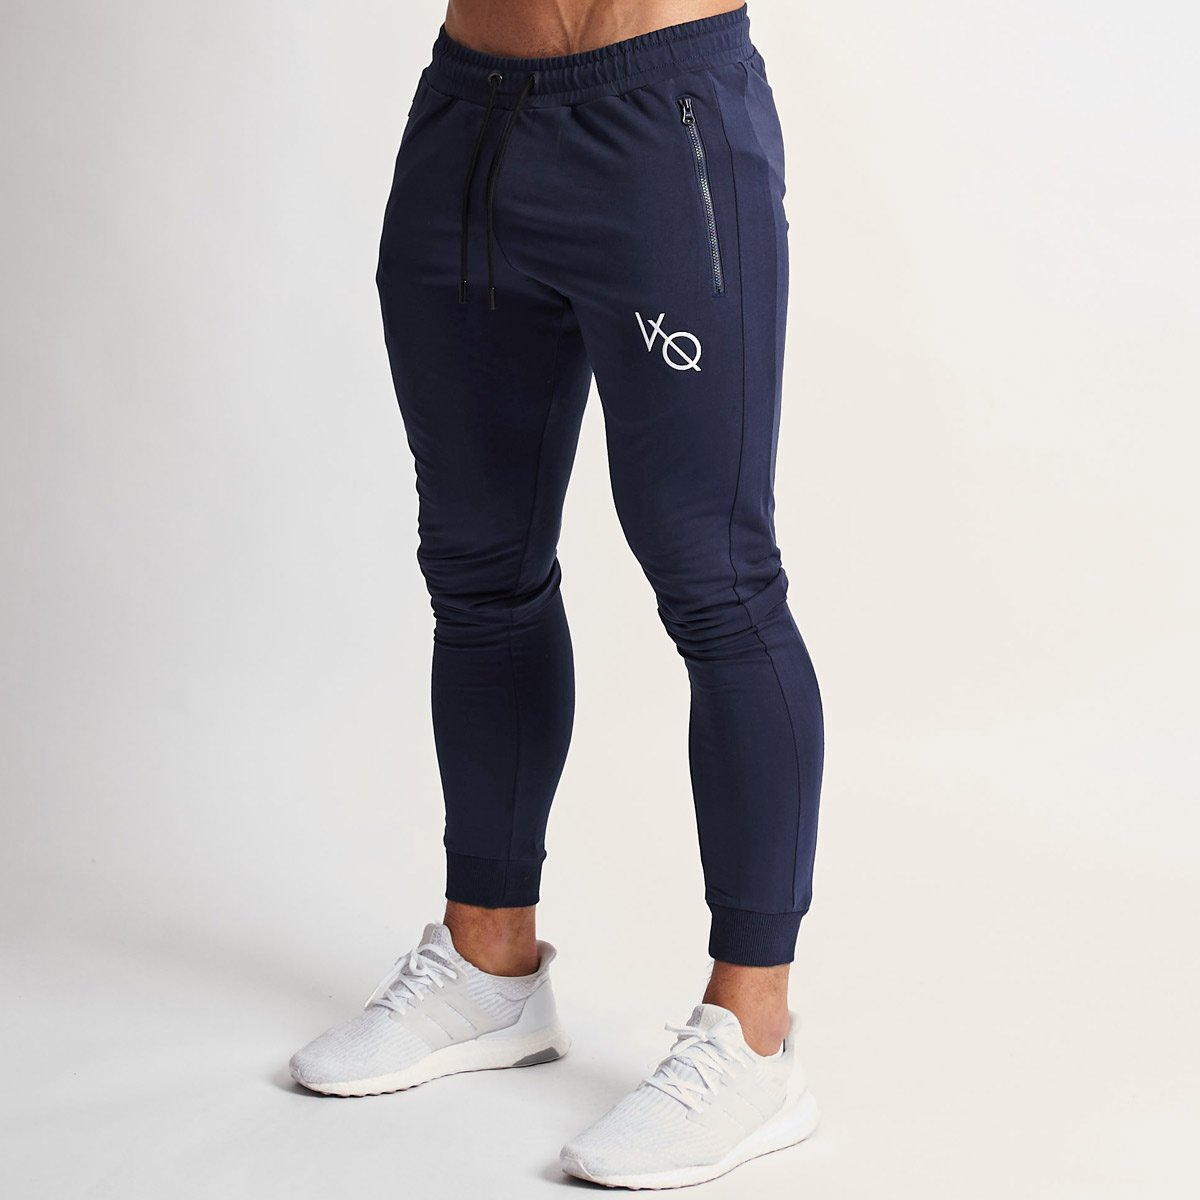 Vanquish Eclipse Navy Tapered Sweatpants Tapered